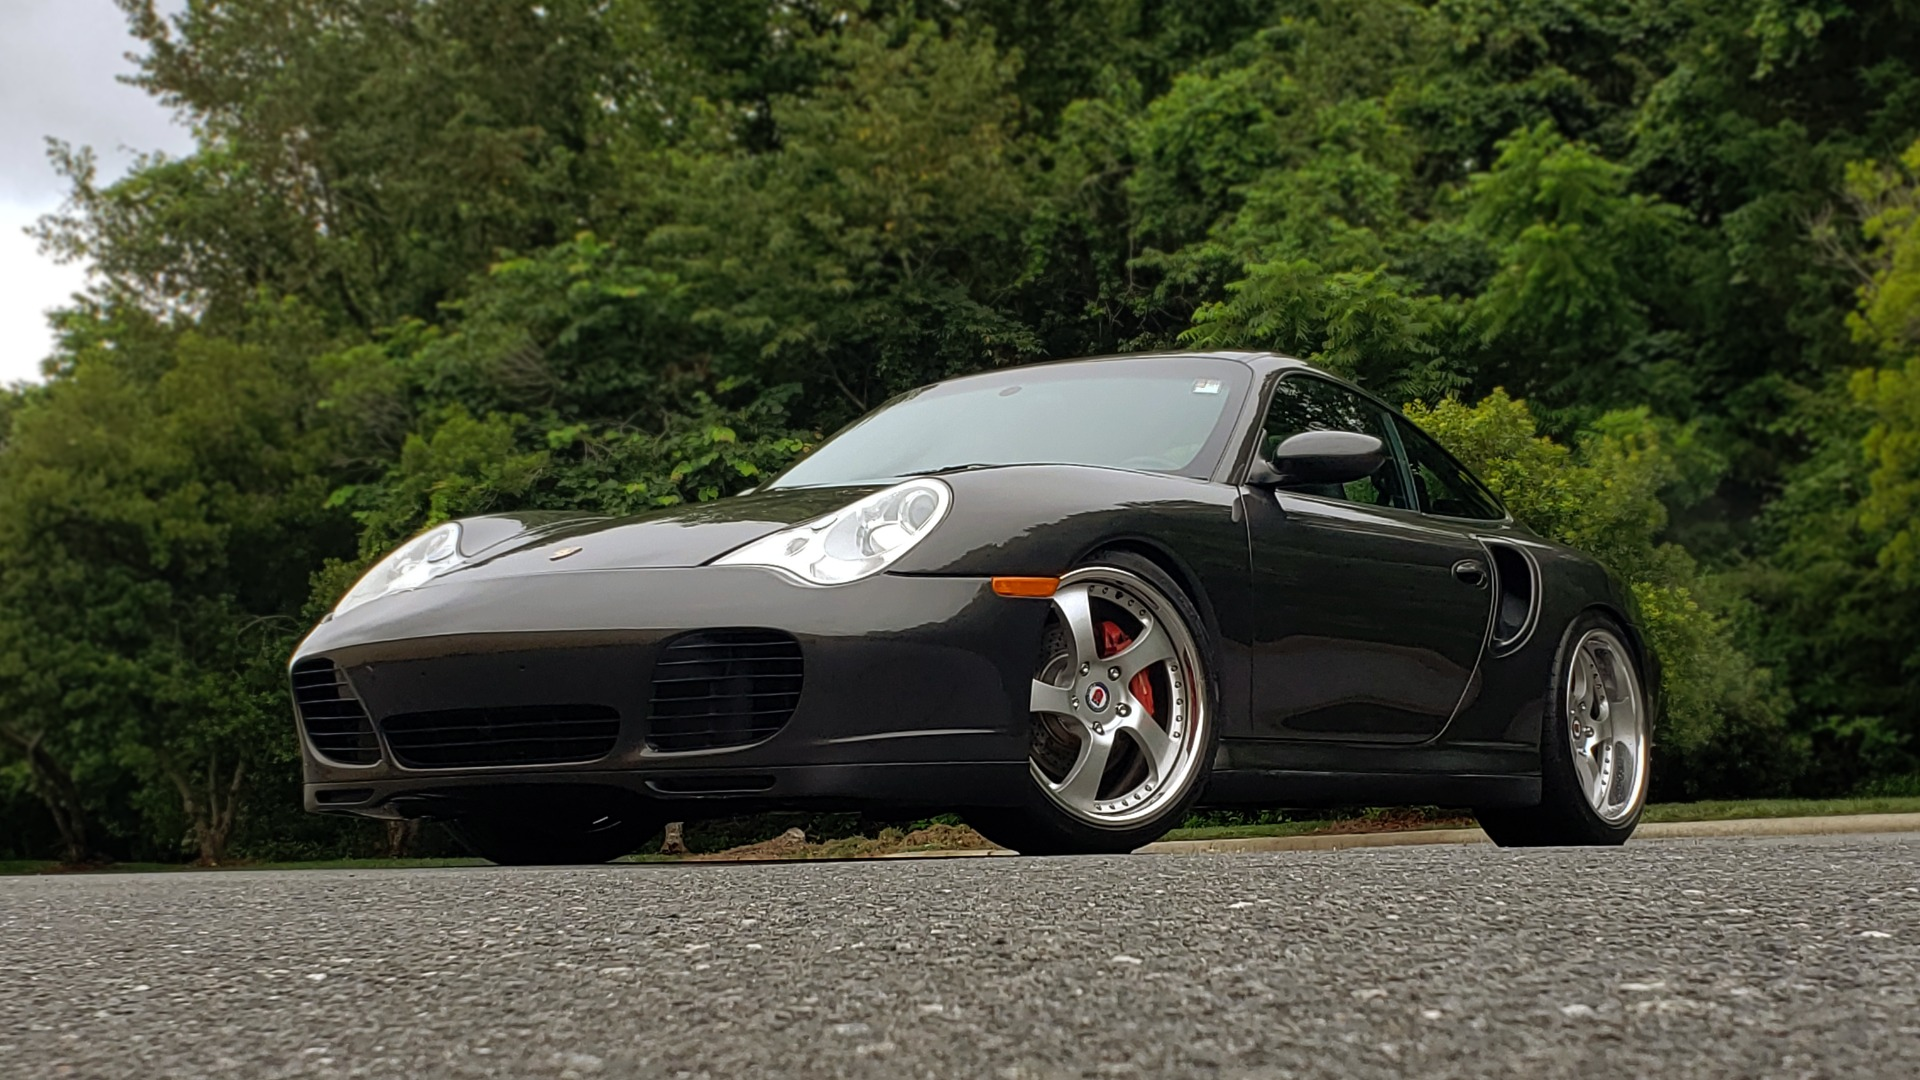 Used 2002 Porsche 911 CARRERA TURBO / 6-SPD MAN / ALPINE / BOSE / PERF UPGRADES for sale $53,995 at Formula Imports in Charlotte NC 28227 3